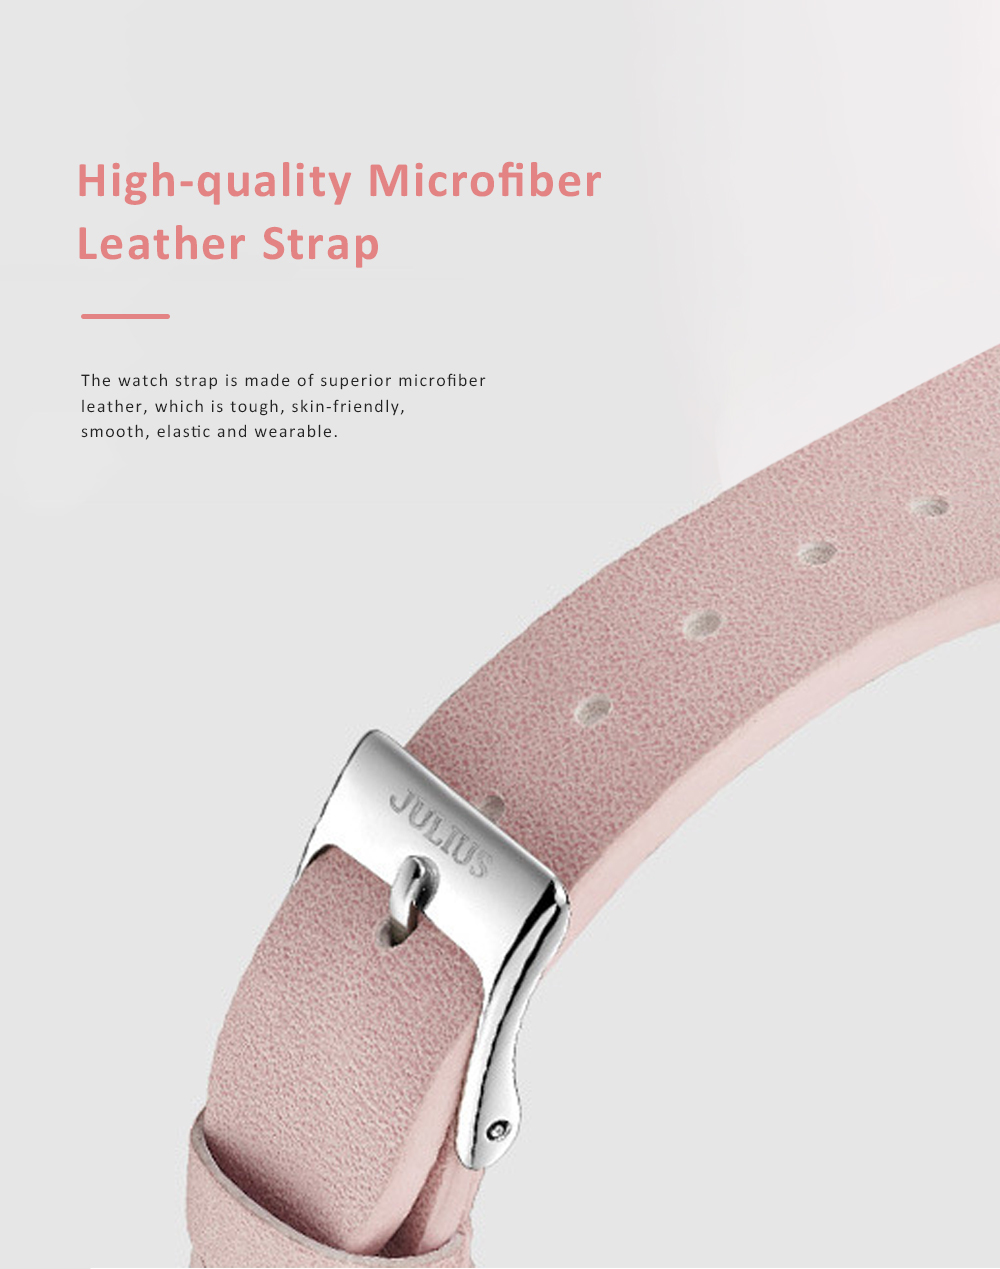 Lady Stylish Minimalist 30M Waterproof Quartz Wrist Watch with Microfiber Leather Strap Delicate Stitching Decoration 2